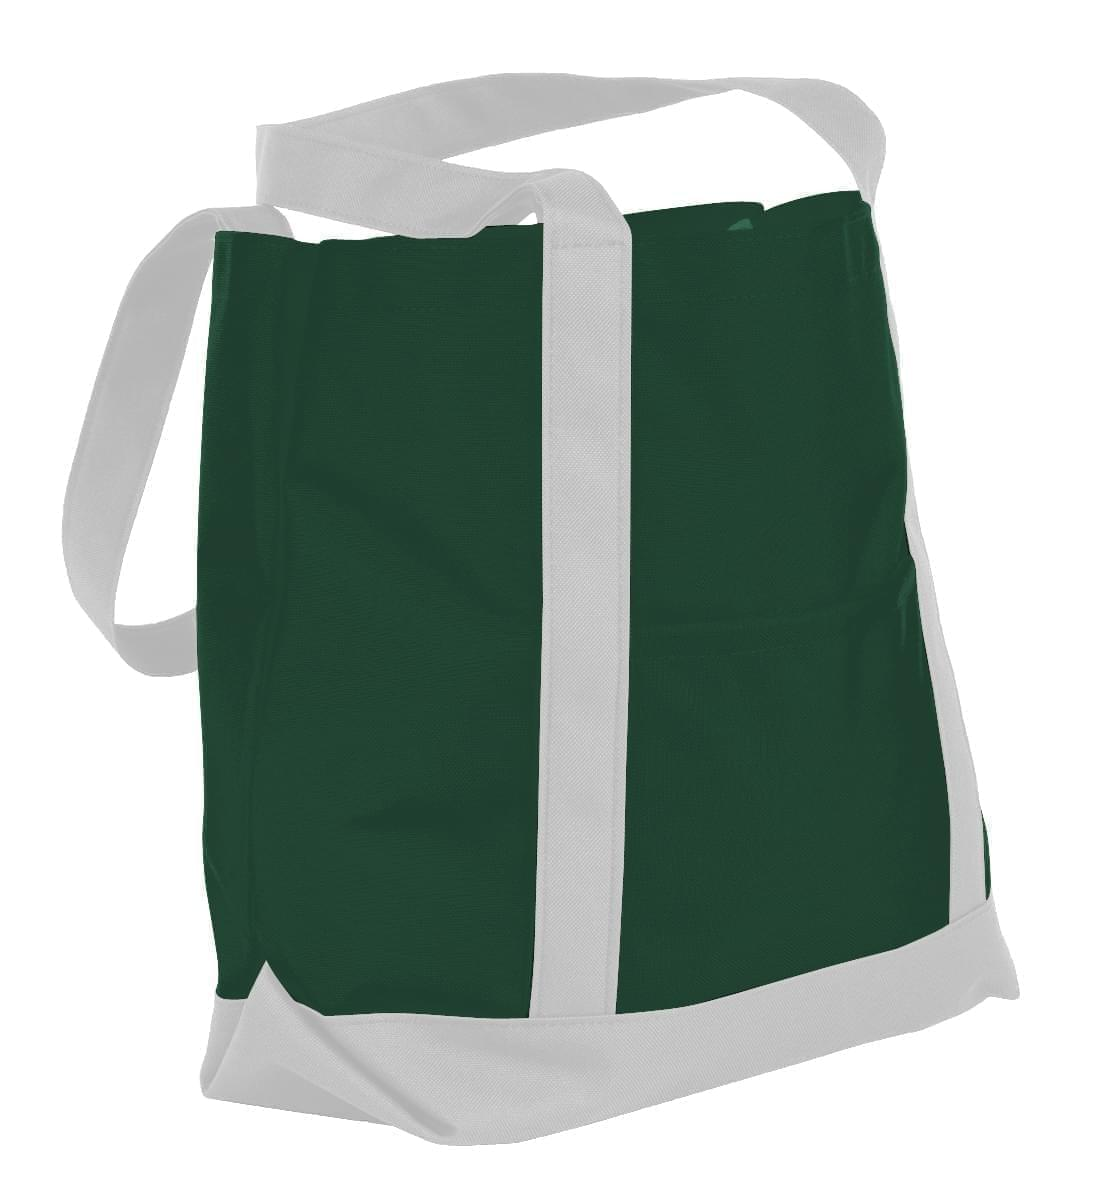 USA Made Nylon Poly Boat Tote Bags, Hunter Green-White, XAACL1UASP